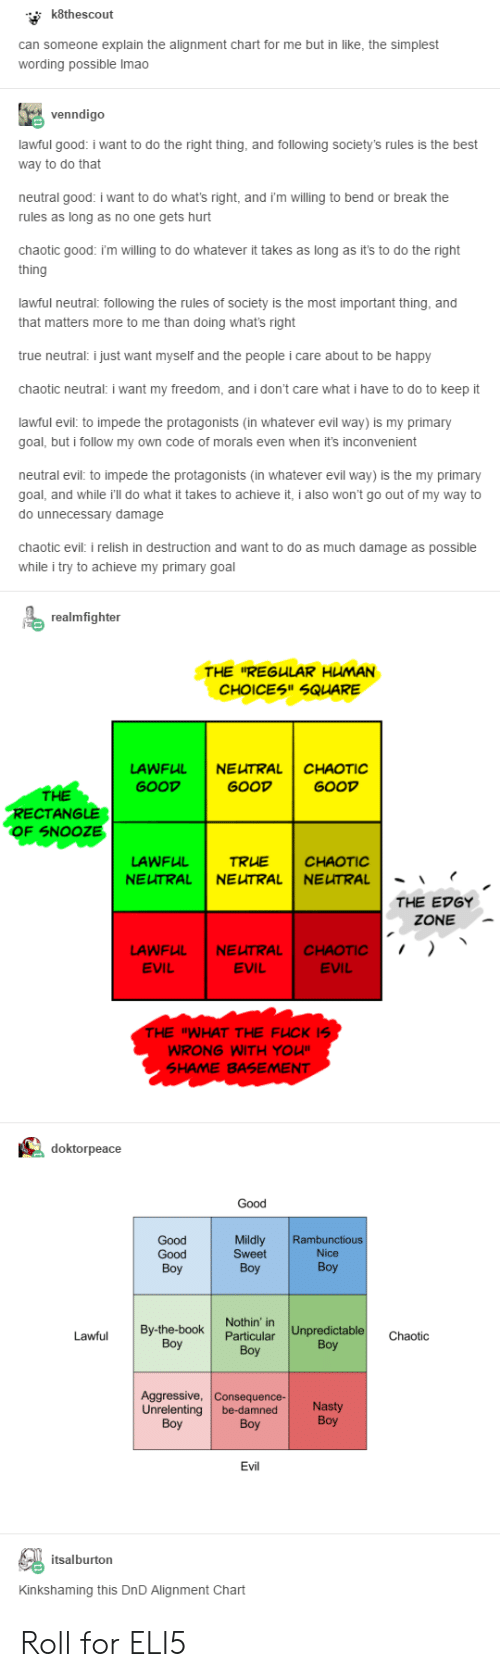 """Nasty, True, and Best: k8thescout  can someone explain the alignment chart for me but in like, the simplest  wording possible Imao  Vvenndigo  lawful good: i want to do the right thing, and following society's rules is the best  way to do that  neutral good: i want to do what's right, and i'm willing to bend or break the  rules as long as no one gets hurt  chaotic good: i'm willing to do whatever it takes as long as it's to do the right  thing  lawful neutral: following the rules of society is the most important thing, and  that matters more to me than doing what's right  true neutral: i just want myself and the people i care about to be happy  chaotic neutral: i want my freedom, and i don't care what i have to do to keep it  lawful evil: to impede the protagonists (in whatever evil way) is my primary  goal, but i follow my own code of morals even when it's inconvenient  neutral evil: to impede the protagonists (in whatever evil way) is the my primary  goal, and while i'll do what it takes to achieve it, i also won't go out of my way to  do unnecessary damage  chaotic evil: i relish in destruction and want to do as much damage as possible  while i try to achieve my primary goal  realmfighter  THE """"REGULAR HUMAN  CHOICES"""" SQUARE  LAWFUL  NEUTRAL  CHAOTIC  GOOD  GOOD  GOOD  THE  RECTANGLE  OF SNOOZE  LAWFUL  TRUE  CHAOTIC  NEUTRAL  NEUTRAL  NEUTRAL  THE EDGY  ZONE  NEUTRAL  LAWFUL  EVIL  CHAOTIC  EVIL  EVIL  THE """"WHAT THE FUCK IS  WRONG WITH YOU""""  SHAME BASEMENT  doktorpeace  Good  Good  Good  Mildly  Sweet  Rambunctious  Nice  Boy  Вoy  Вoy  Nothin' in  Particular  Unpredictable  By-the-book  Boy  Lawful  Chaotic  Вoy  Boy  Aggressive, Consequence-  Unrelenting  Nasty  Boy  be-damned  Boy  Boy  Evil  itsalburton  Kinkshaming this DnD Alignment Chart Roll for ELI5"""